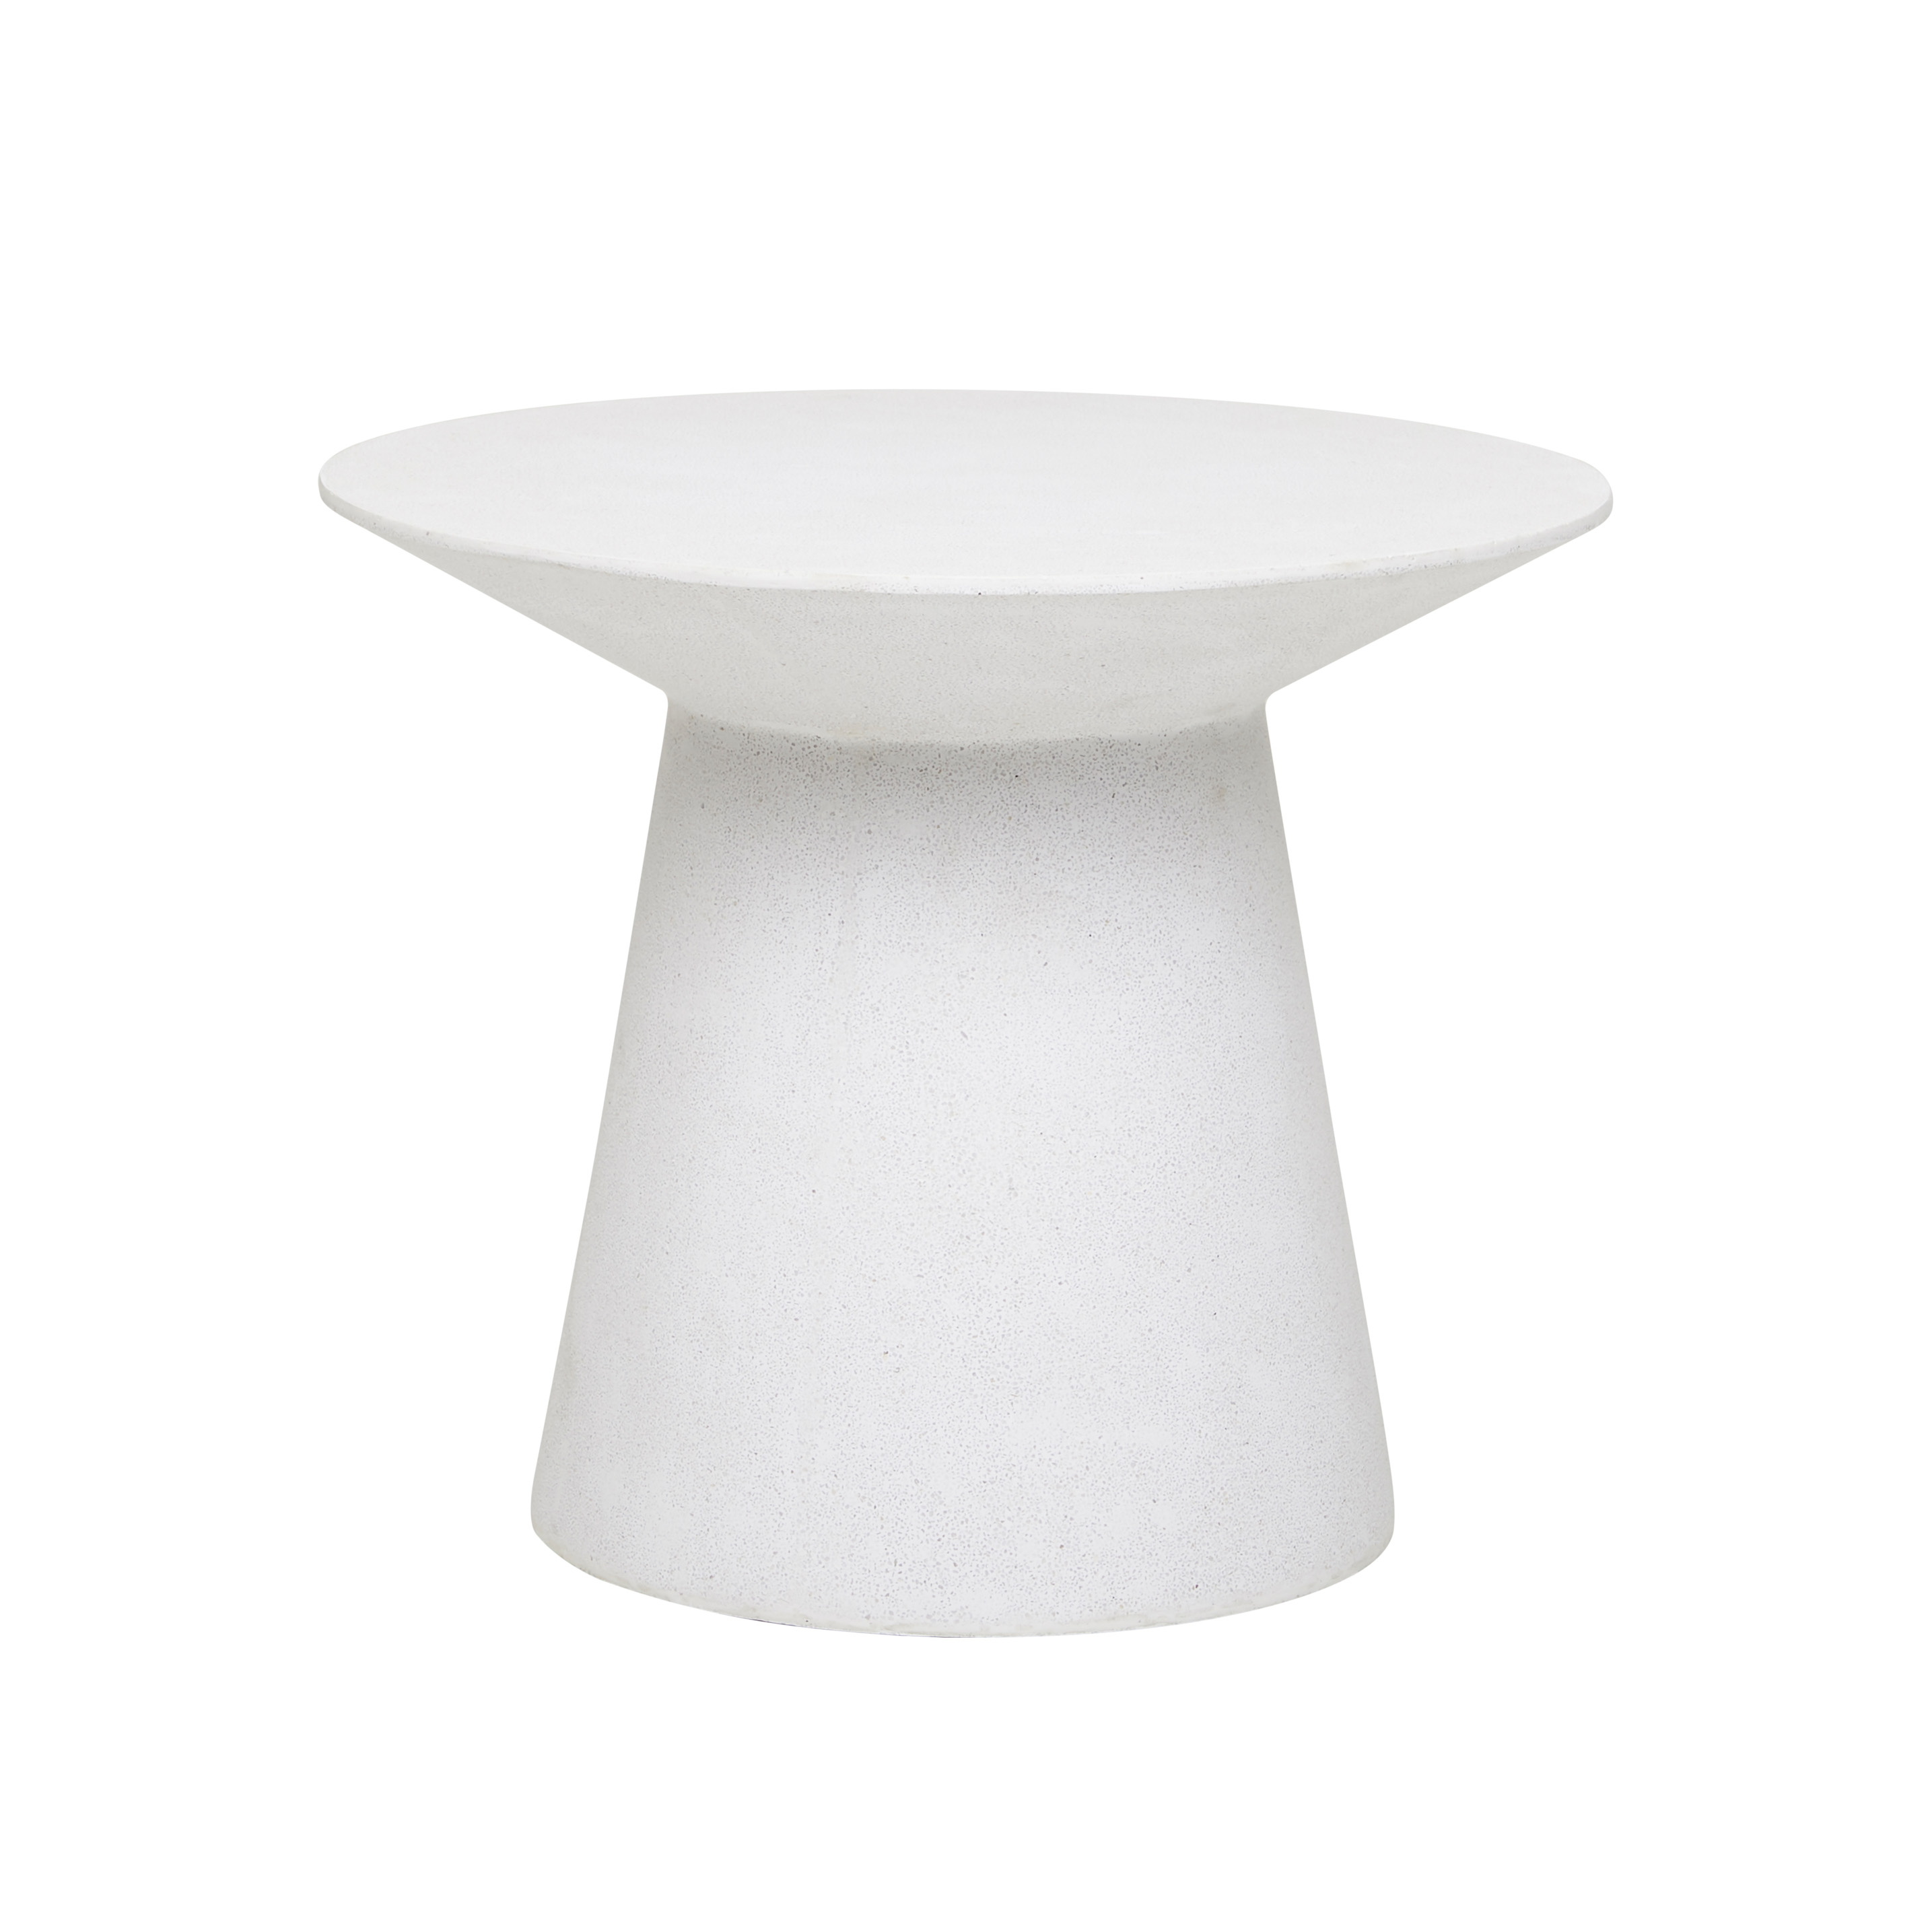 Furniture Hero-Images Coffee-Side-Tables-and-Trolleys livorno-round-side-table-01